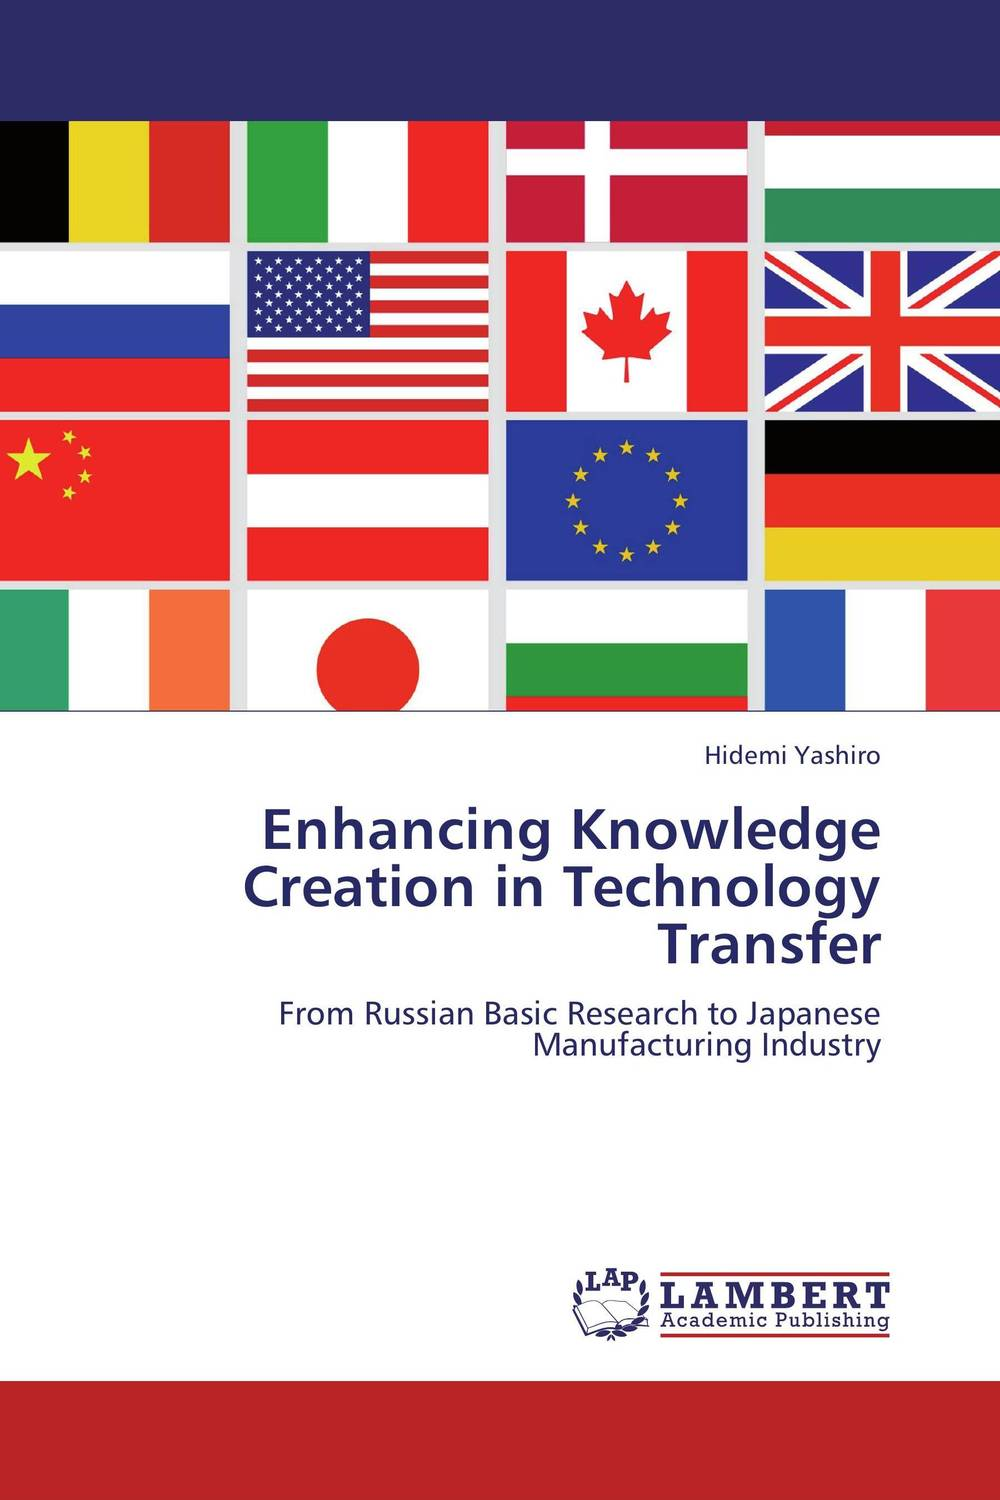 Enhancing Knowledge Creation in Technology Transfer